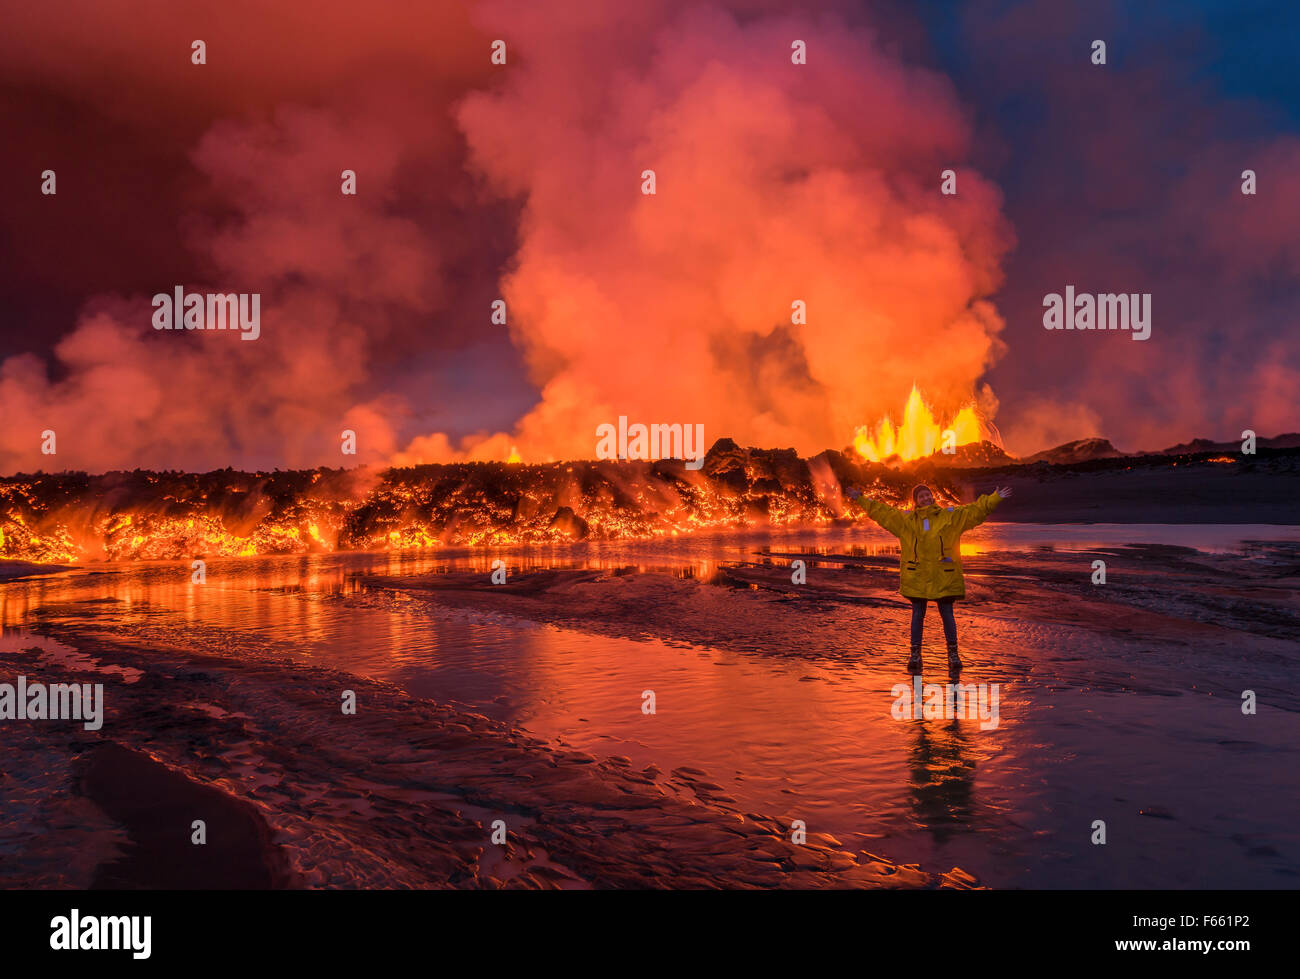 Woman excited by the lava flow at the Holuhraun Fissure eruption near Bardarbunga Volcano, Iceland - Stock Image